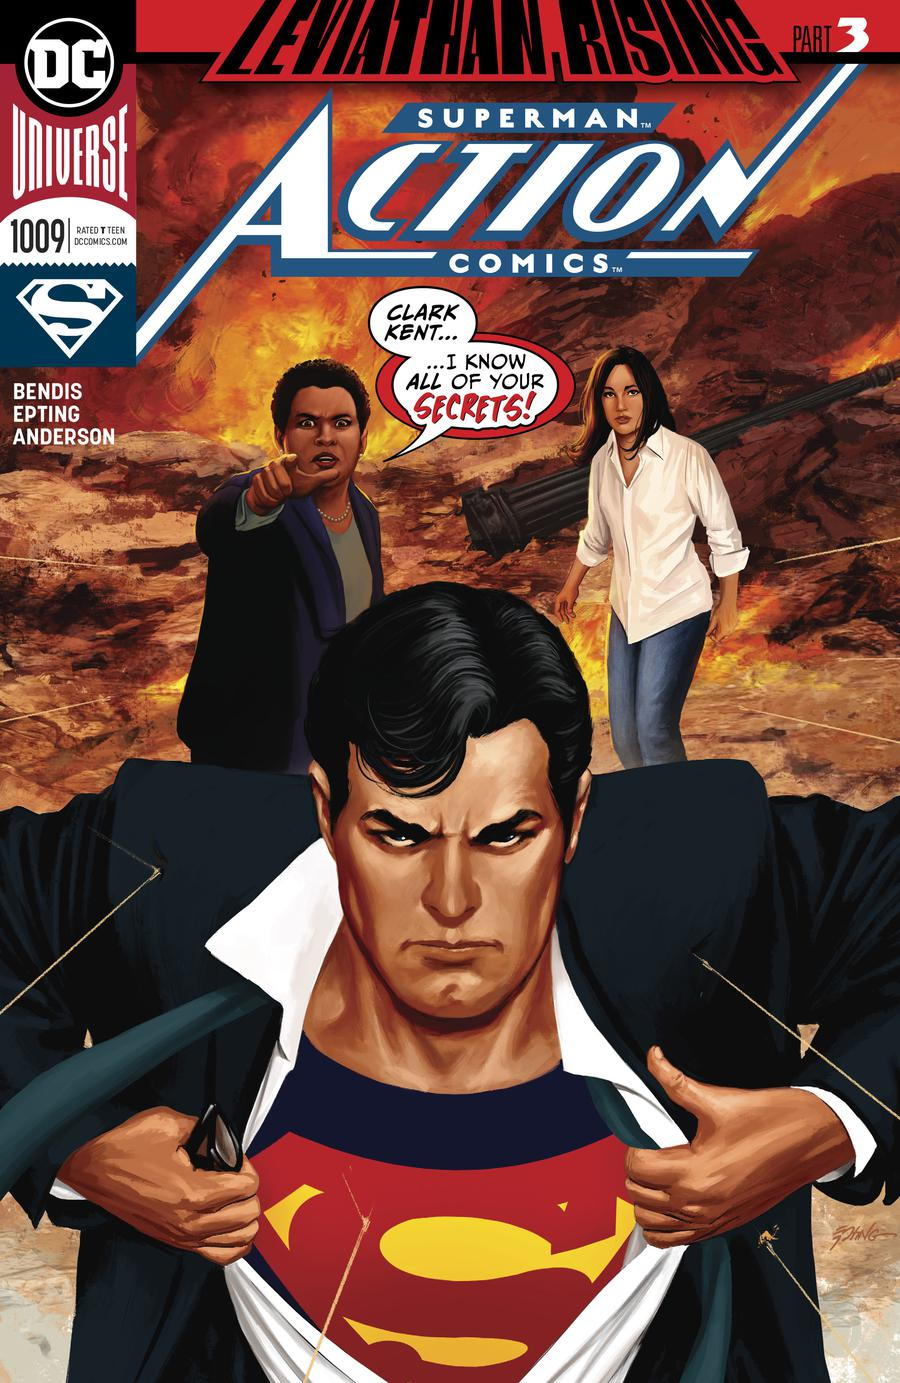 Action Comics Vol 2 #1009 Cover A Regular Steve Epting Cover